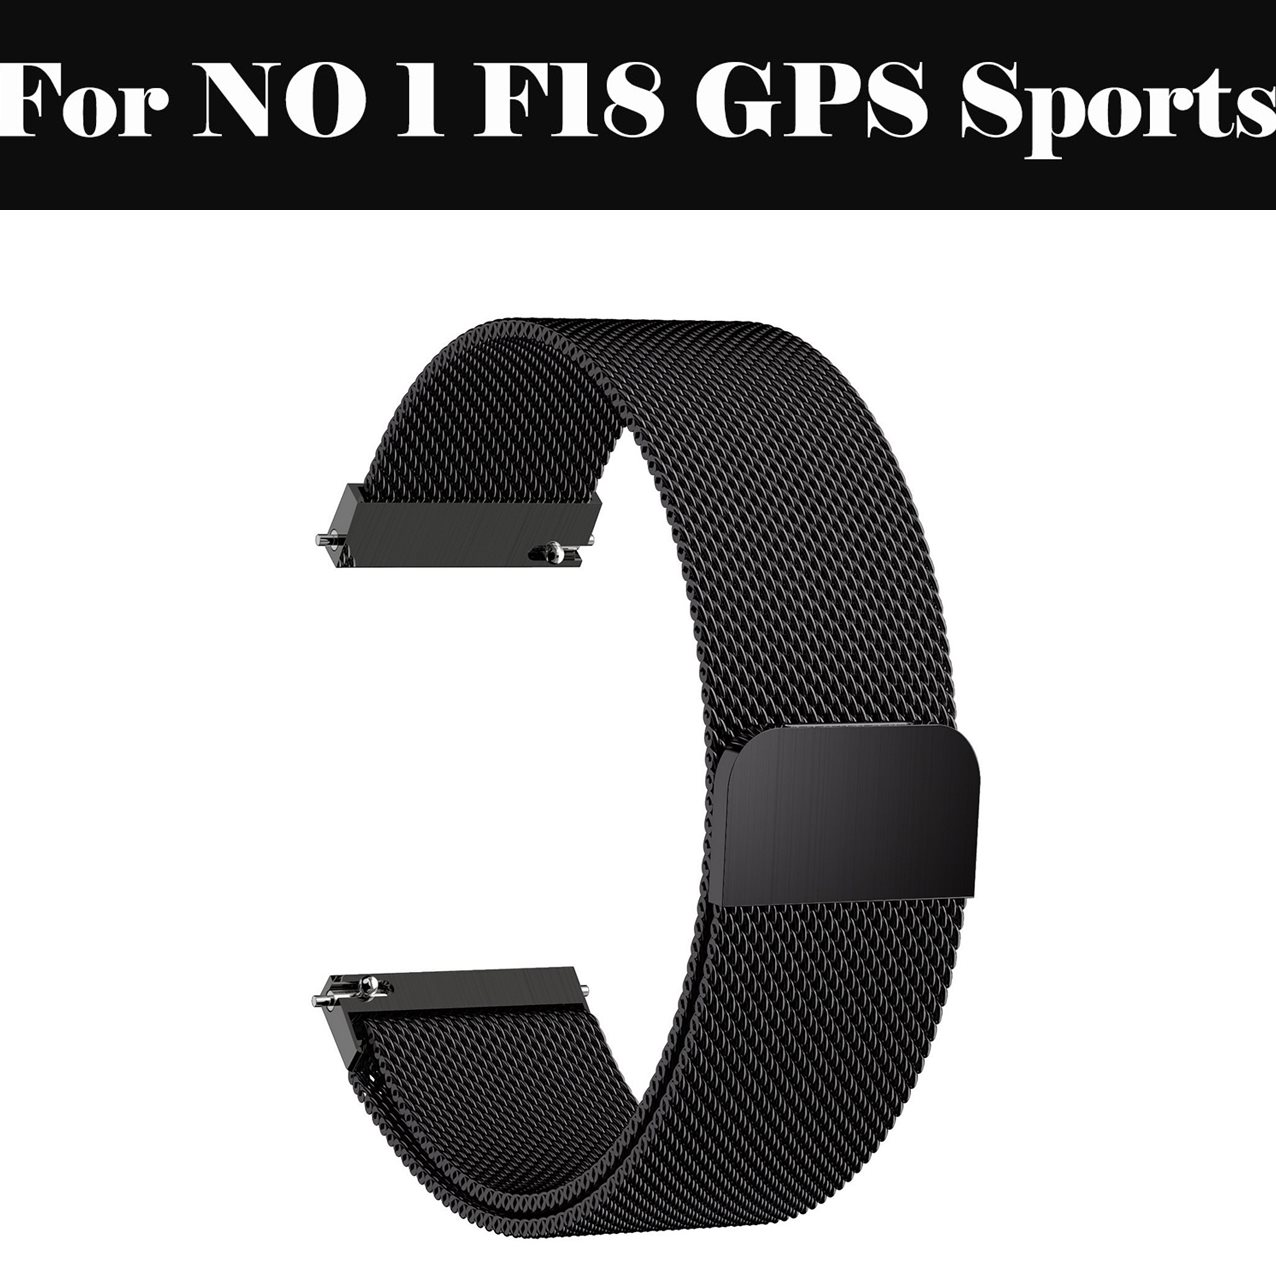 Milanese Loop strap Watch band 14mm 16MM 18MM 20MM 22MM Stainless Steel Bracelet For NO 1 <font><b>F18</b></font> GPS Sports image